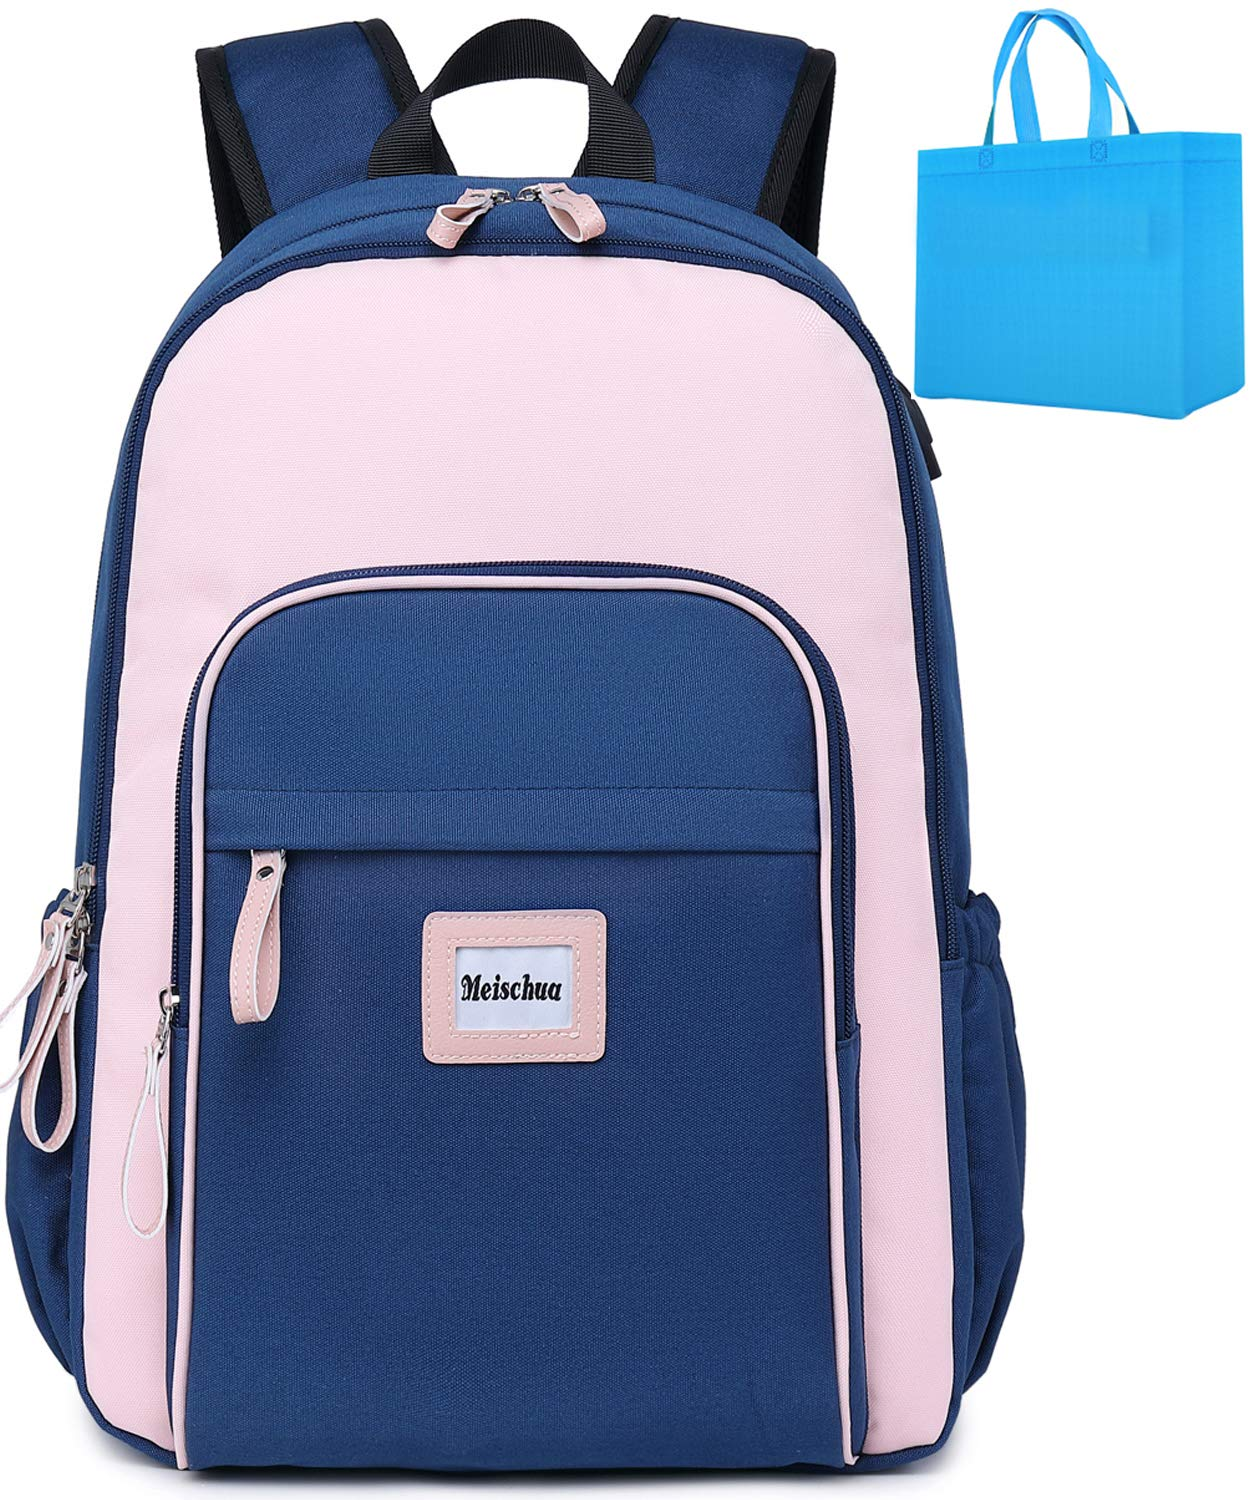 School Backpack Teen Girls Laptop Backpack for Women College Backpack with USB Charging Port Travel Backpack Casual Daypack Fits 15.6 inch Notebook Pink